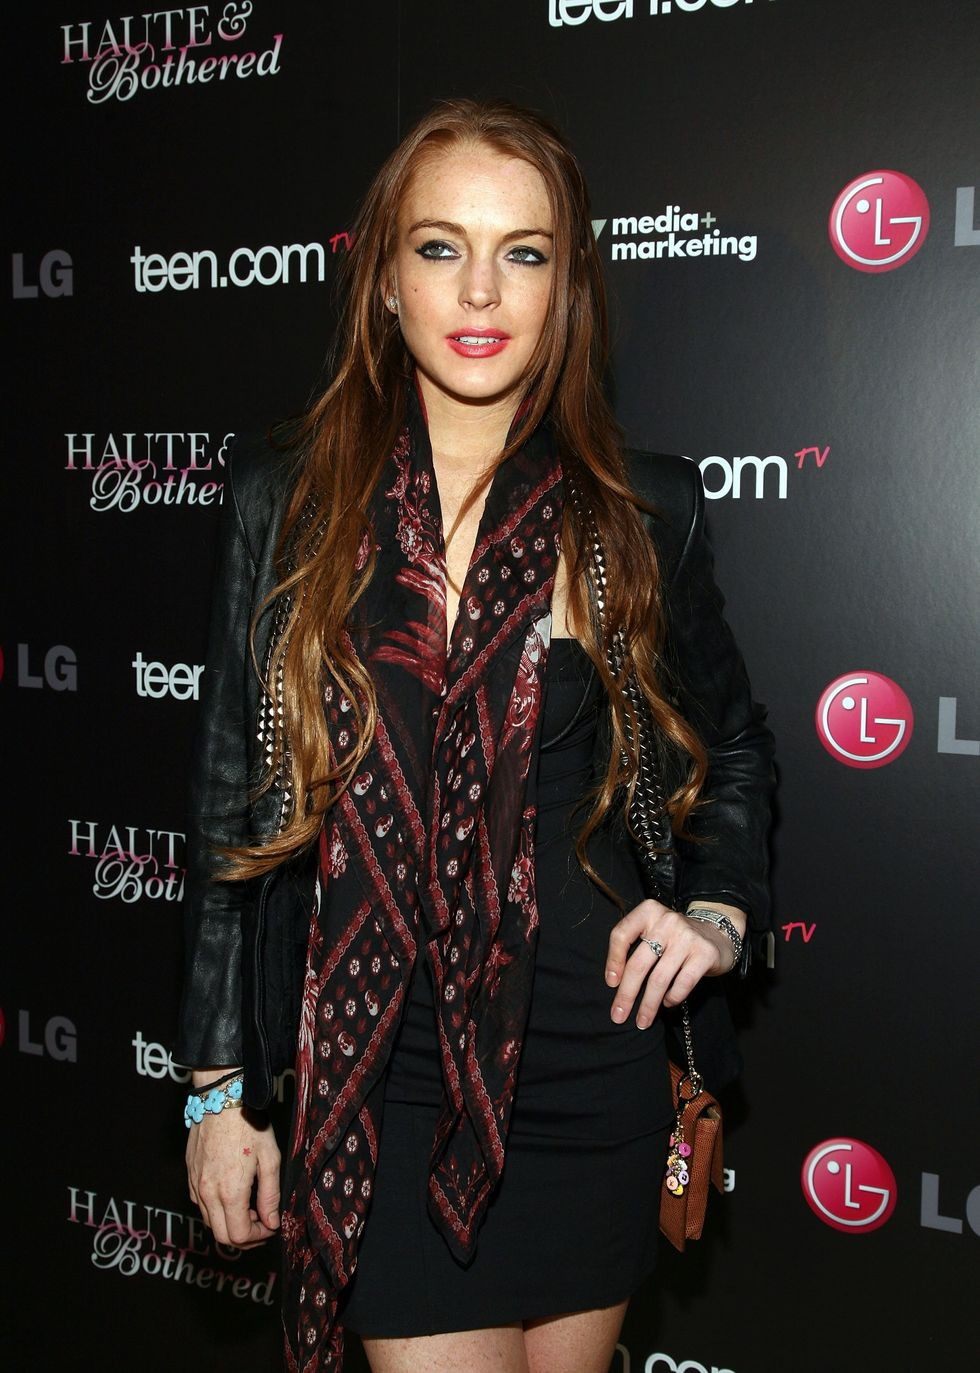 lindsay-lohan-haute-and-bothered-launch-party-in-hollywood-02